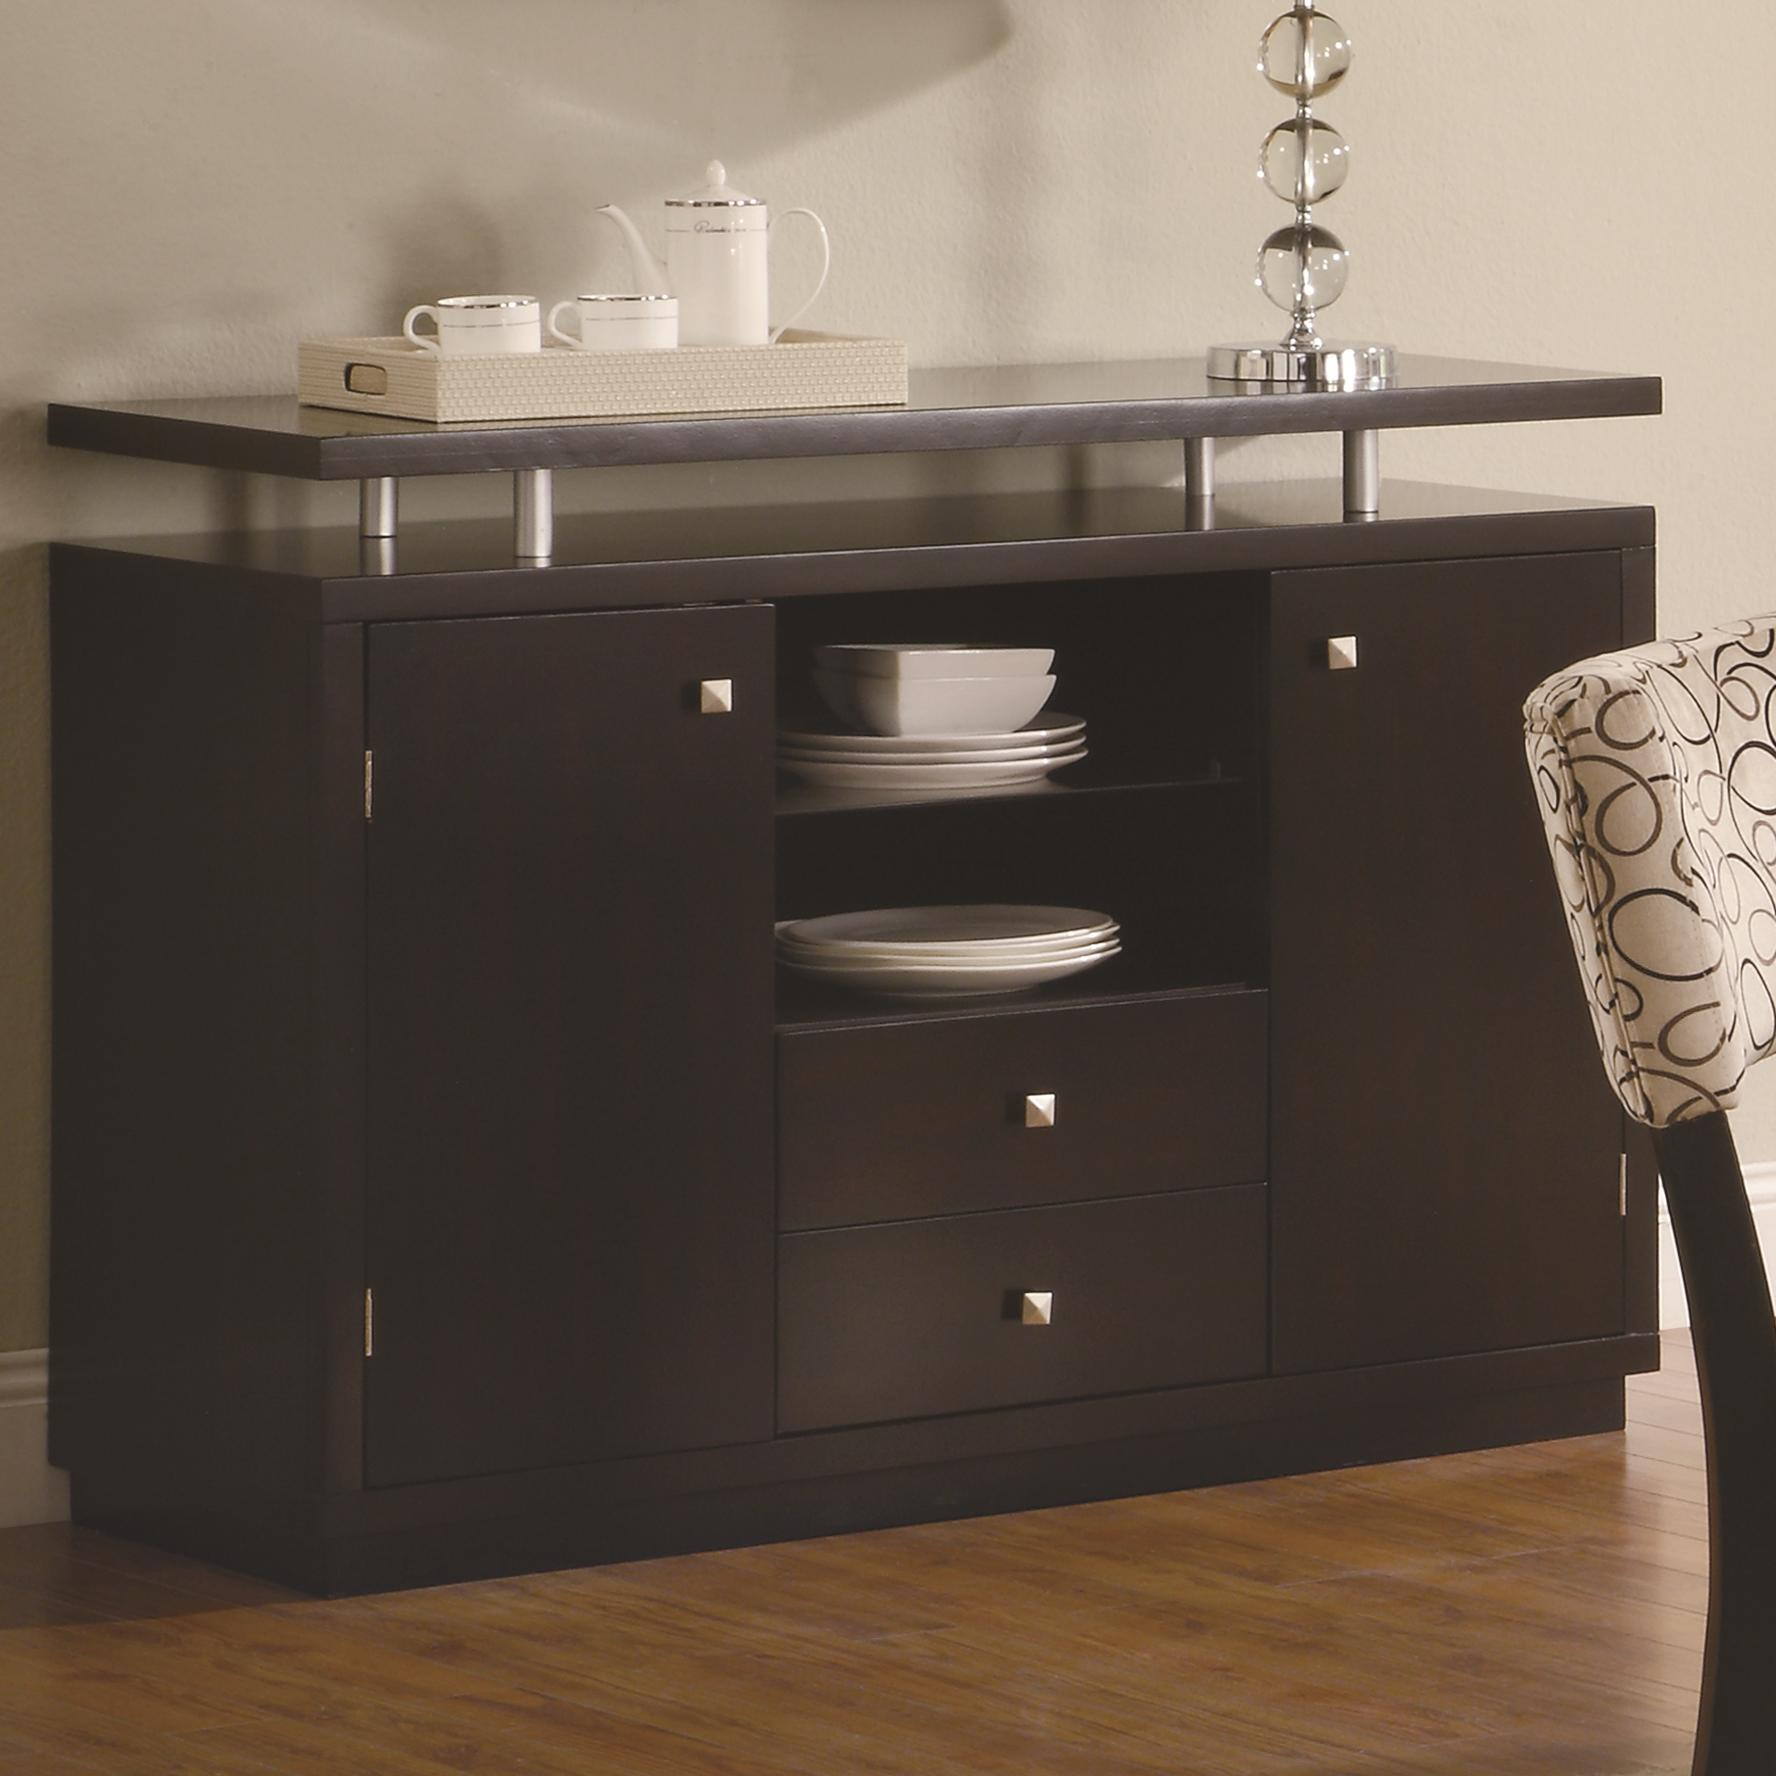 Merveilleux 2 Door Dining Server Buffet With Floating Top   Libby By Coaster   Wilcox  Furniture   Buffet Corpus Christi, Kingsville, Calallen, Texas